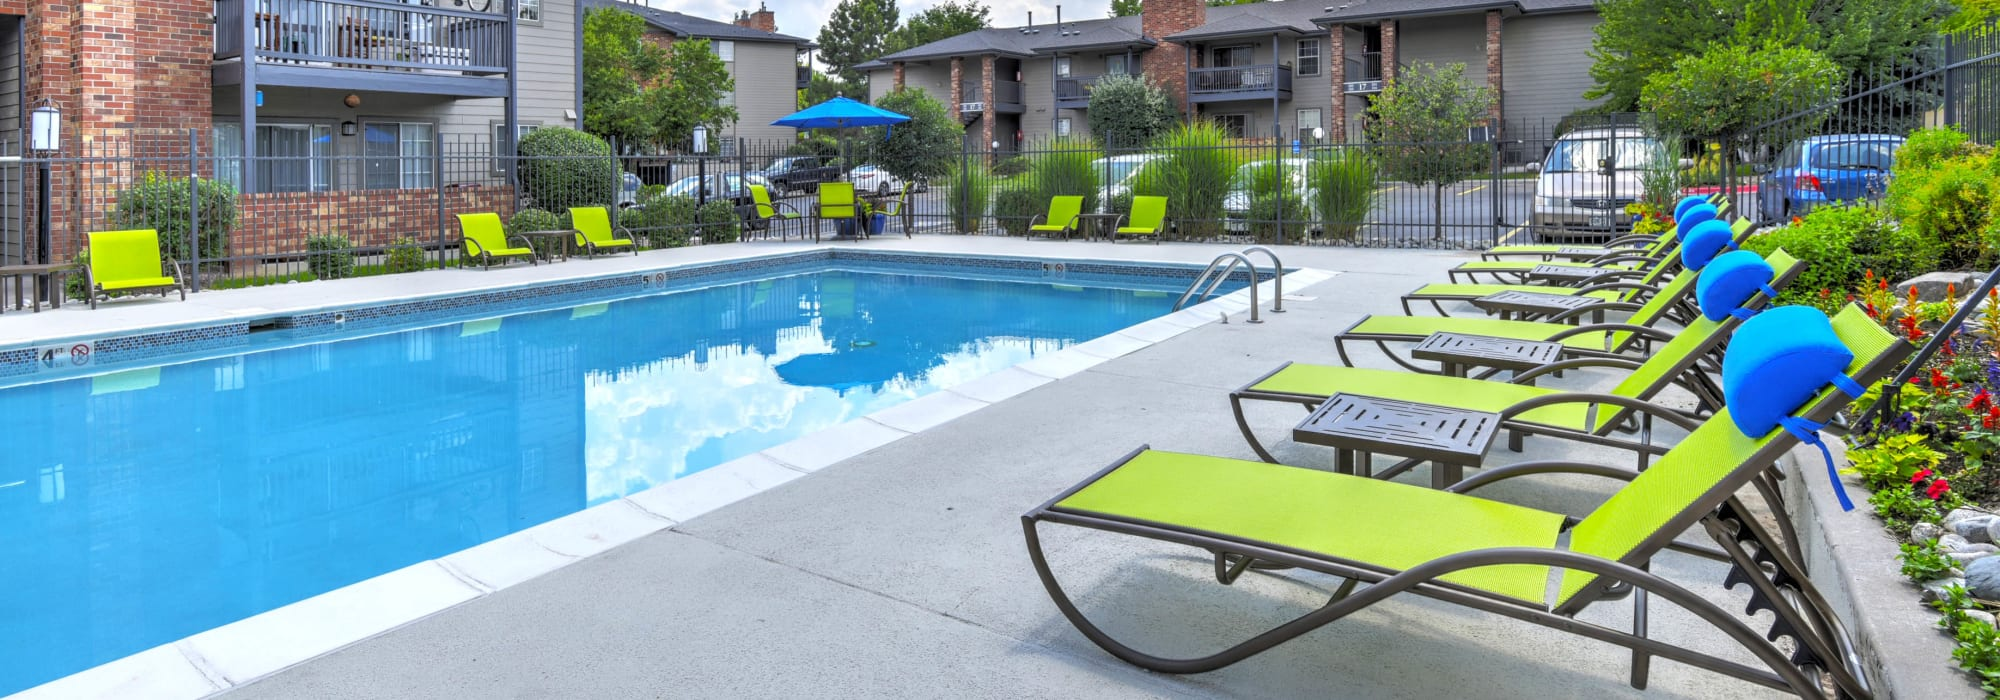 Apply to Arapahoe Club Apartments in Denver, Colorado